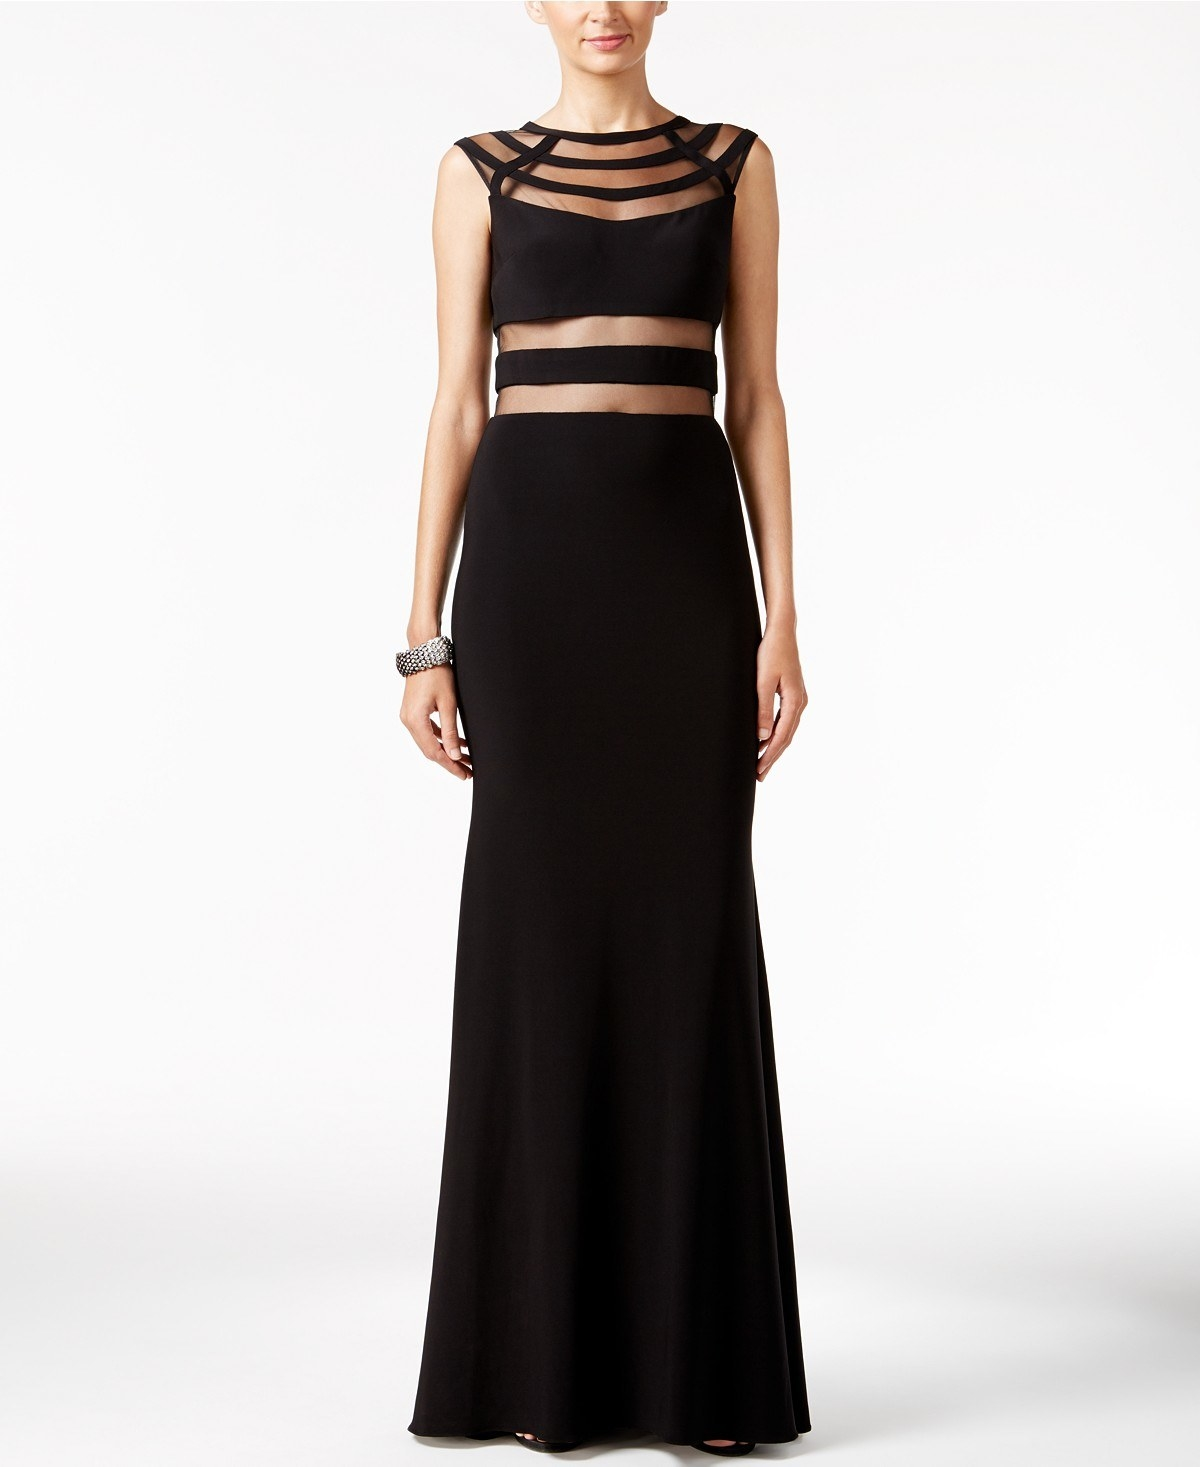 4f3ee3fac7730 The Best Places To Buy Prom Dresses Online